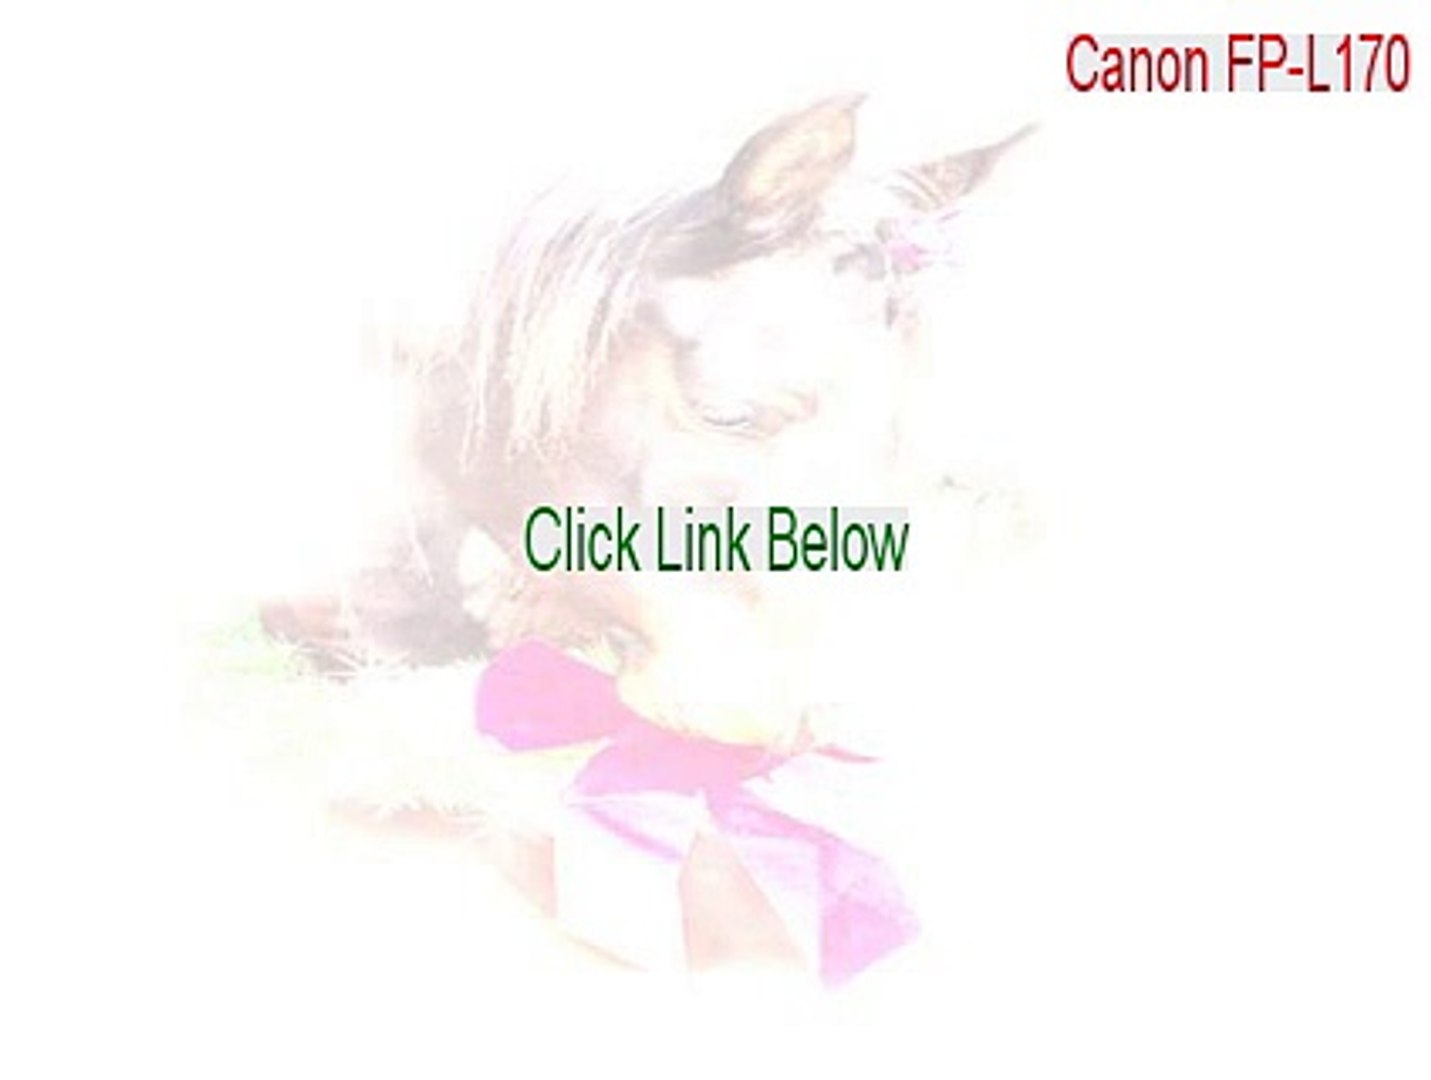 CANON FP L170 DRIVERS DOWNLOAD